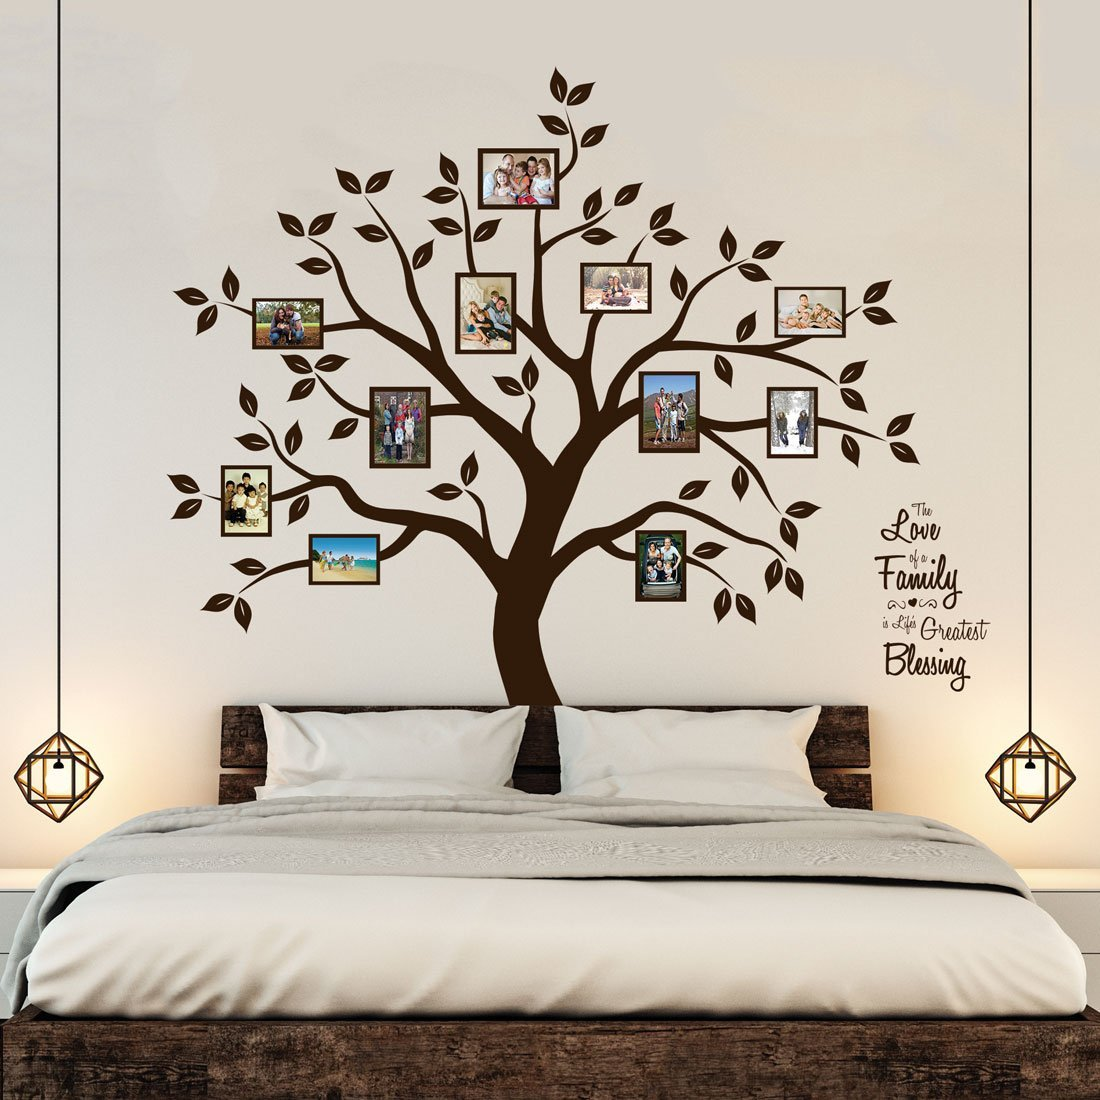 Best 3 Bedroom Wall Decals Sticker For Mural Ideas Homeindec